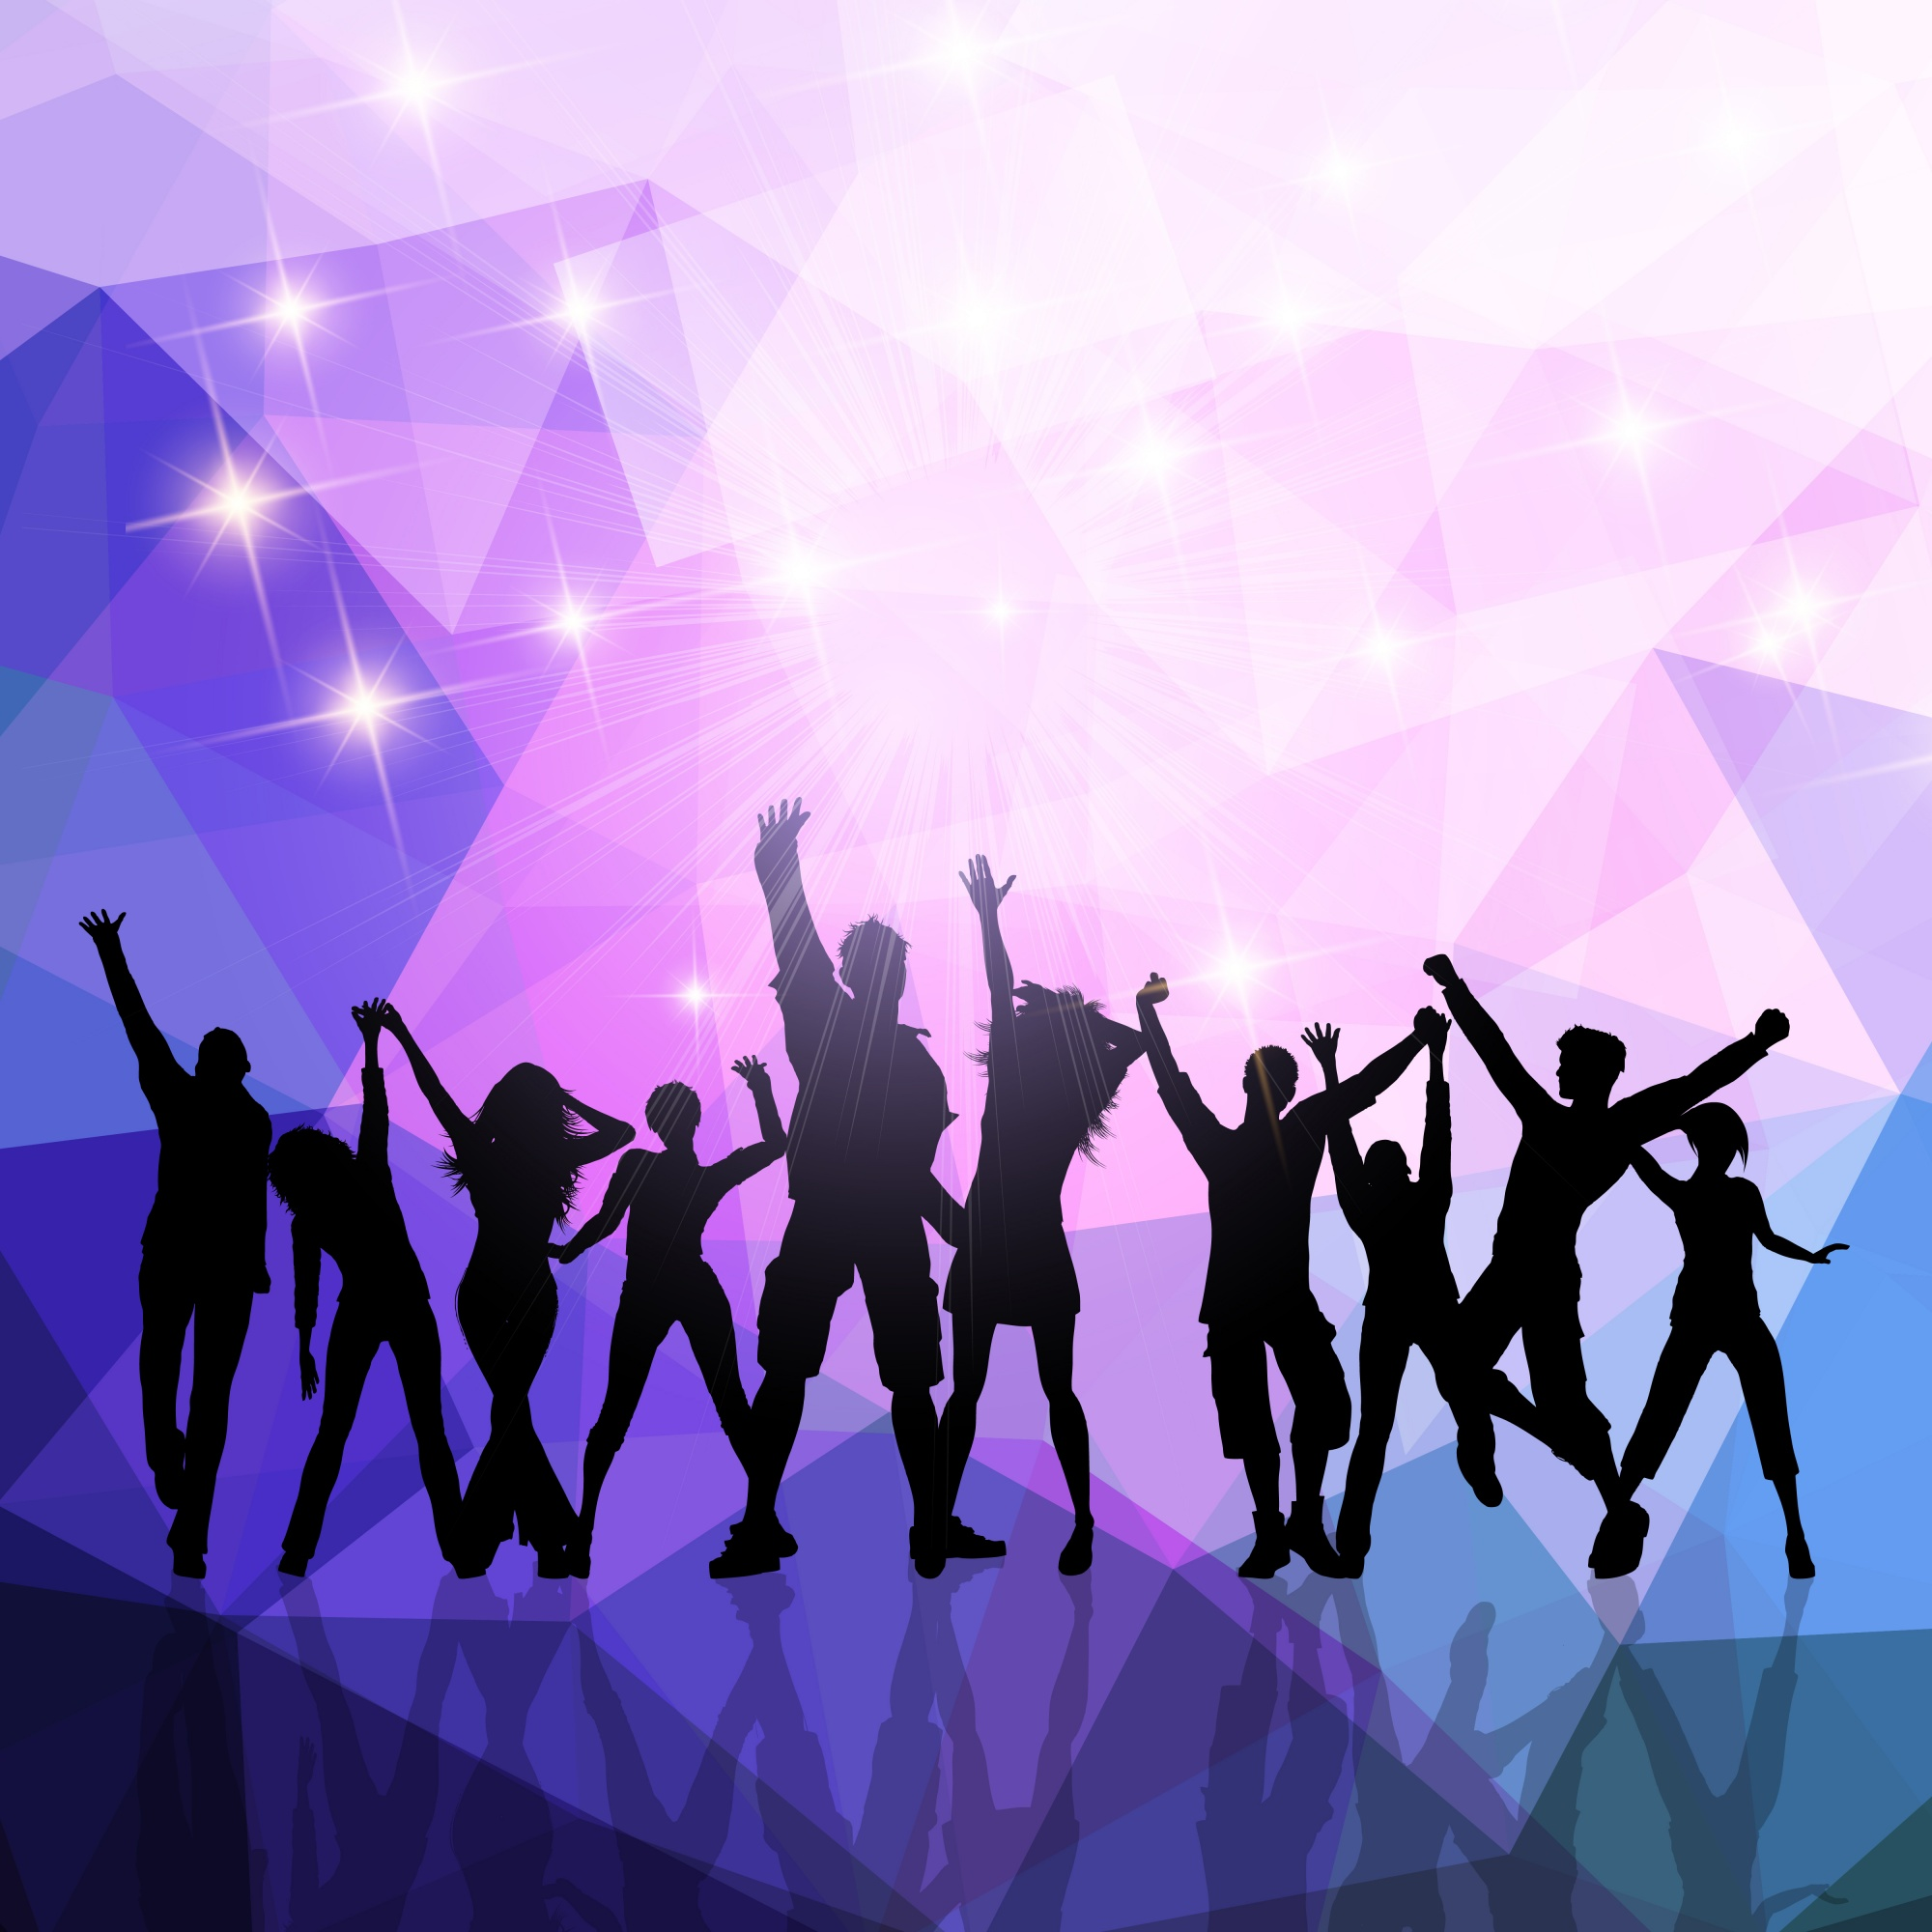 Silhouettes of a party crowd on a low poly background